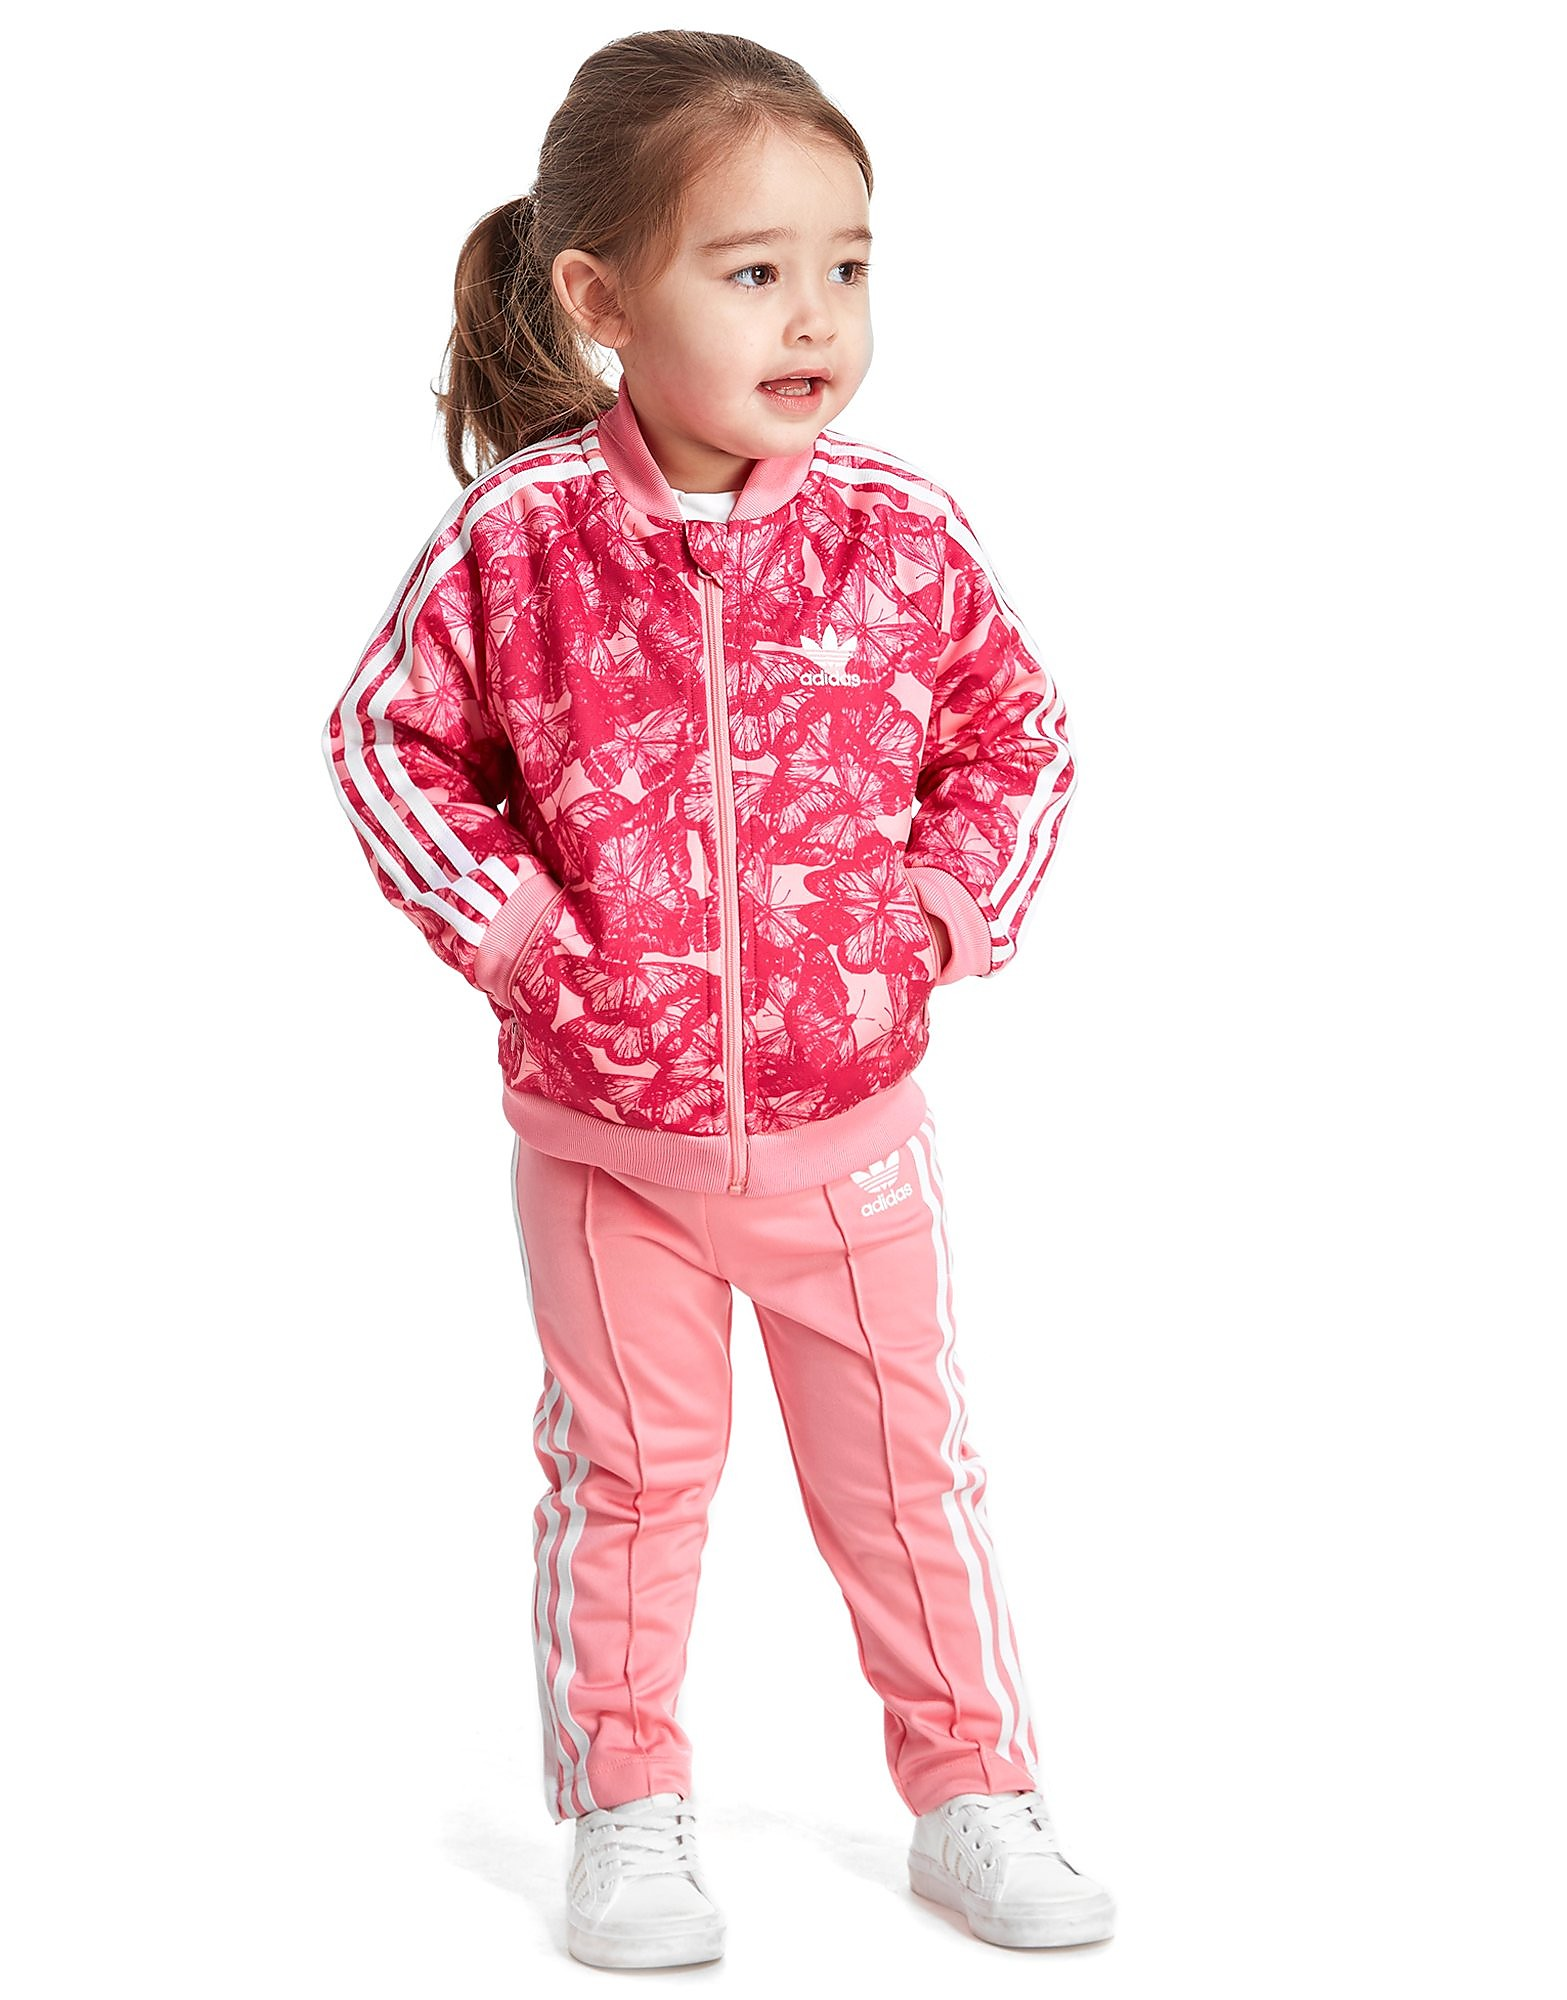 adidas Originals Girls' Berlin Superstar Suit Infant